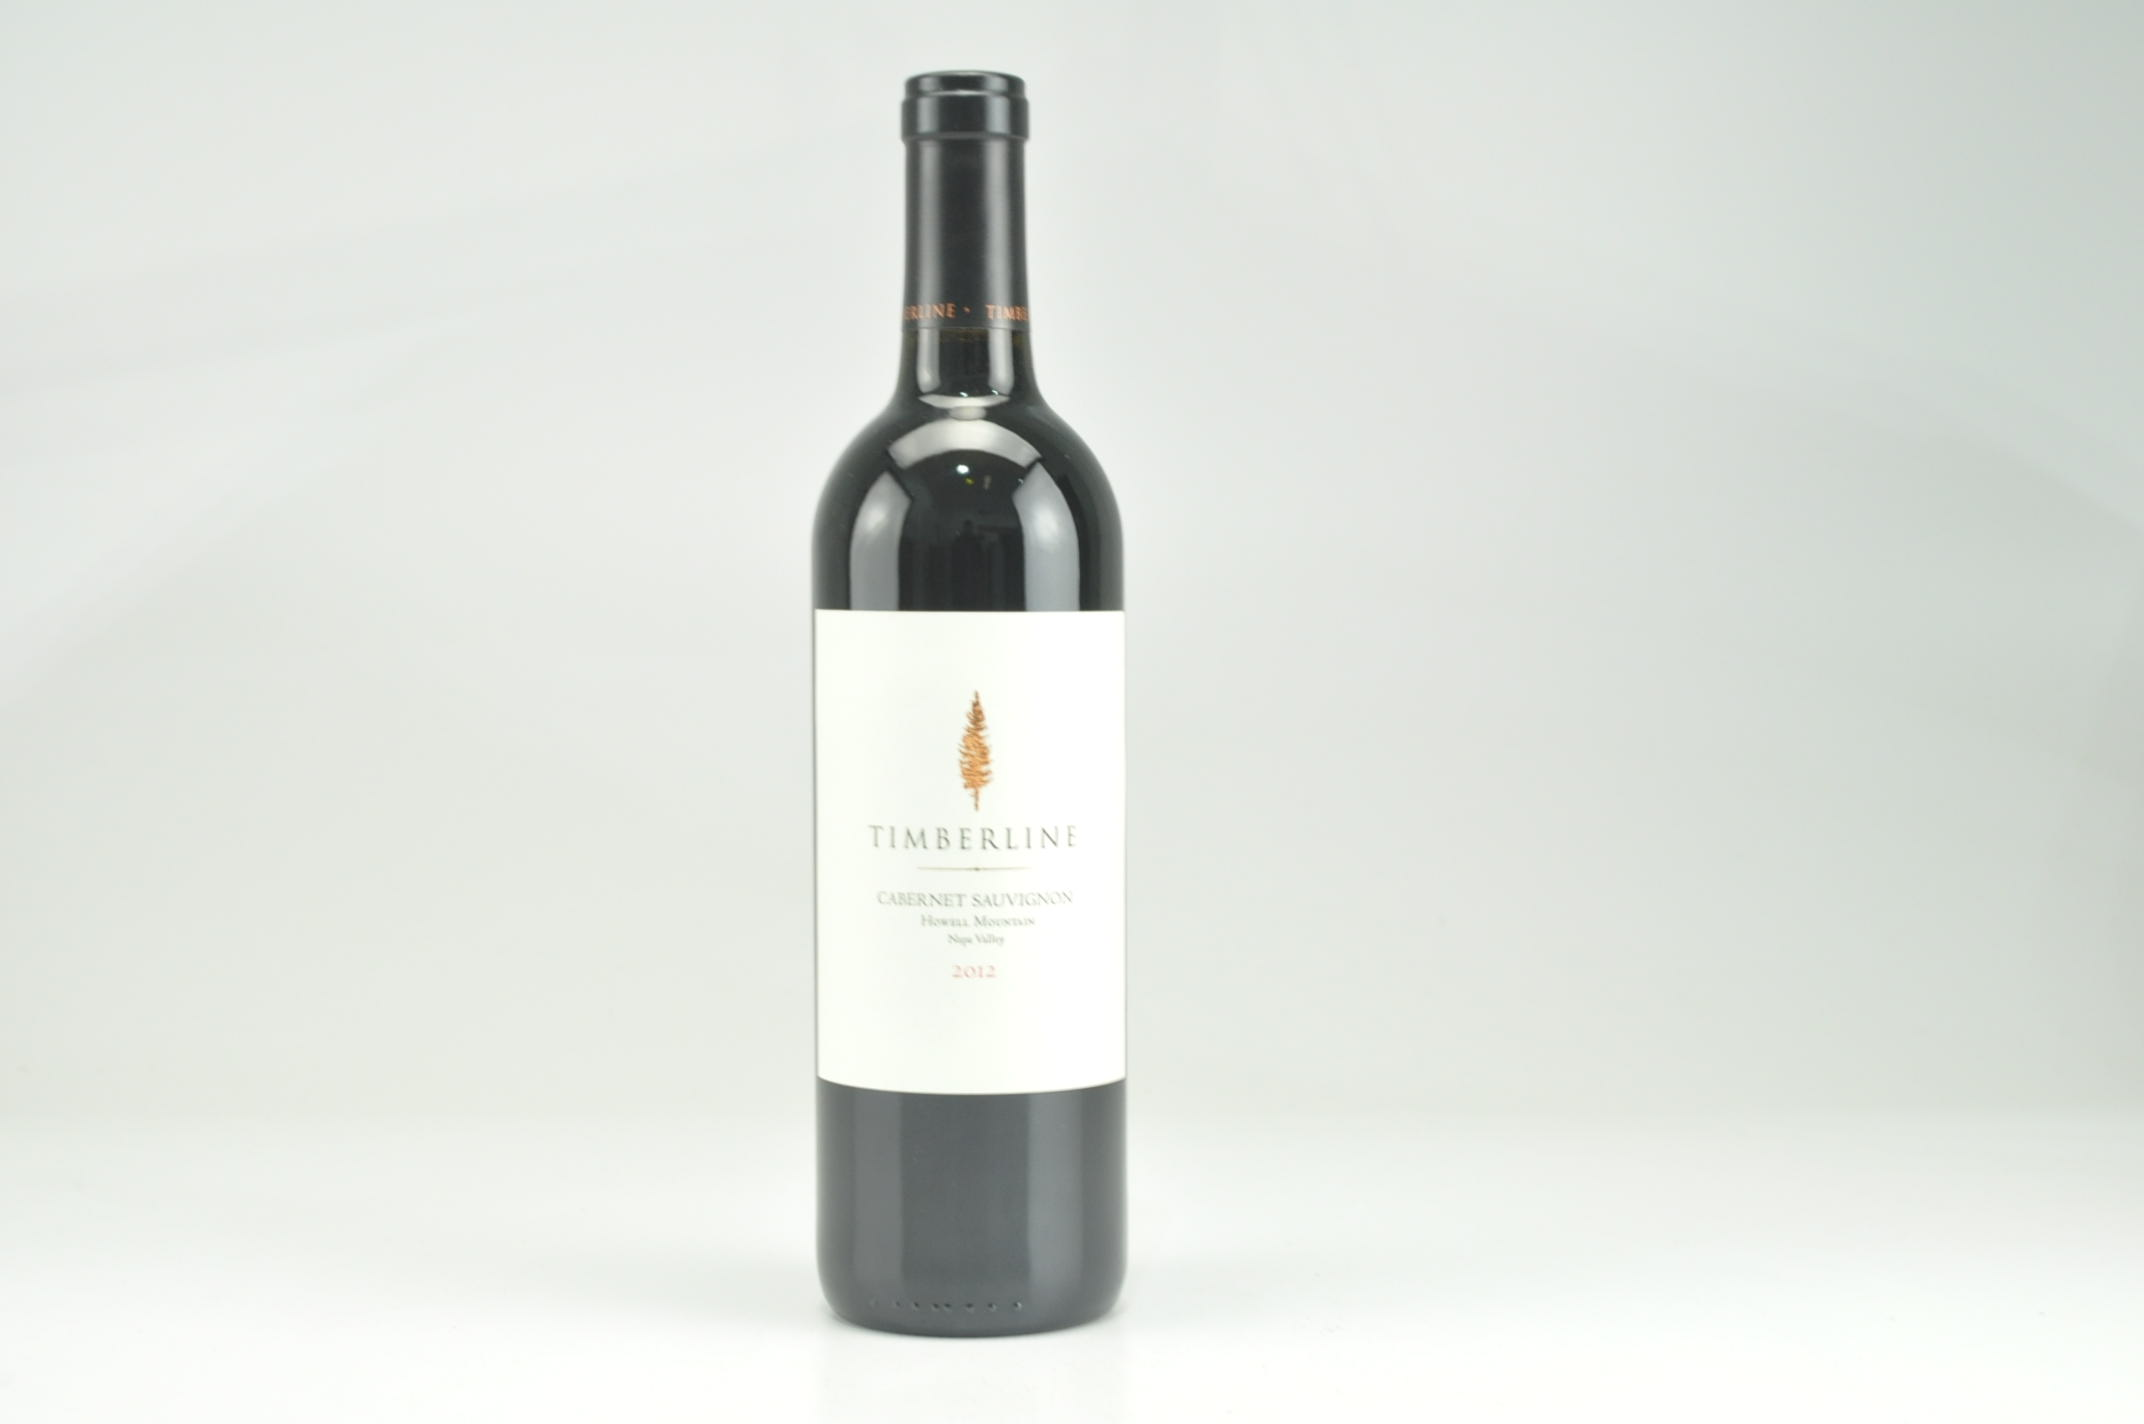 2012 Timberline Cabernet Sauvignon, Howell Mountain